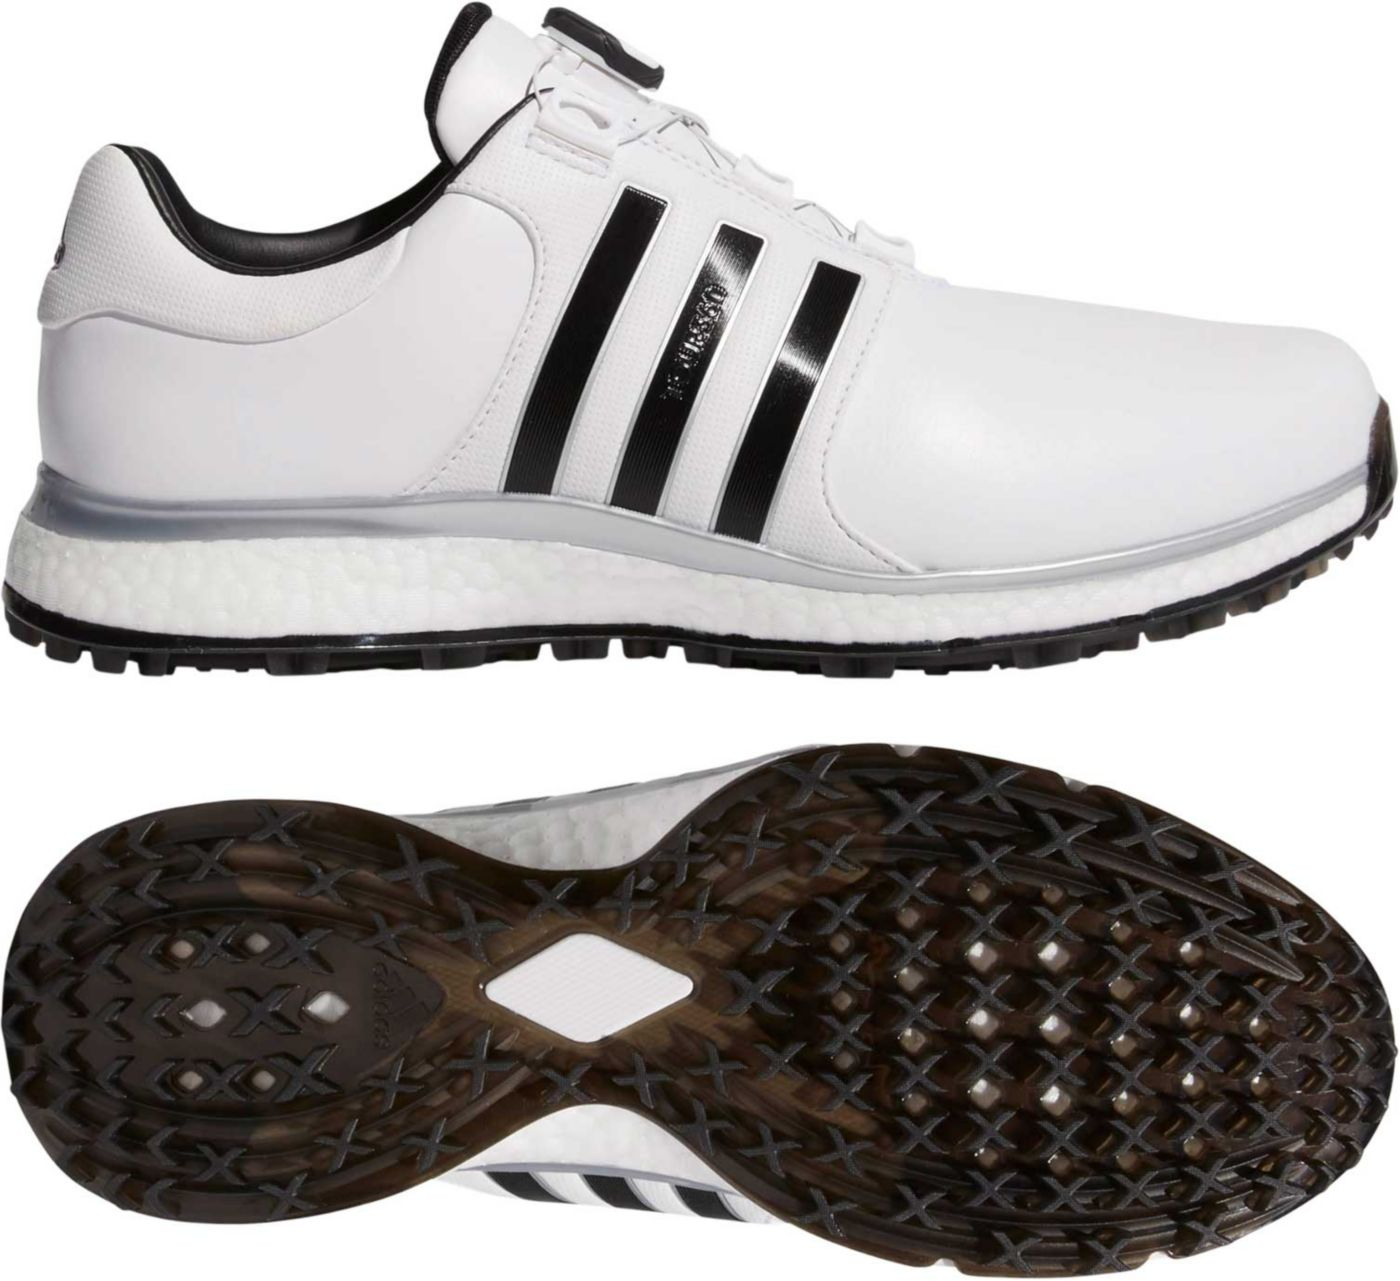 adidas Men's TOUR360 XT SL BOA Golf Shoes